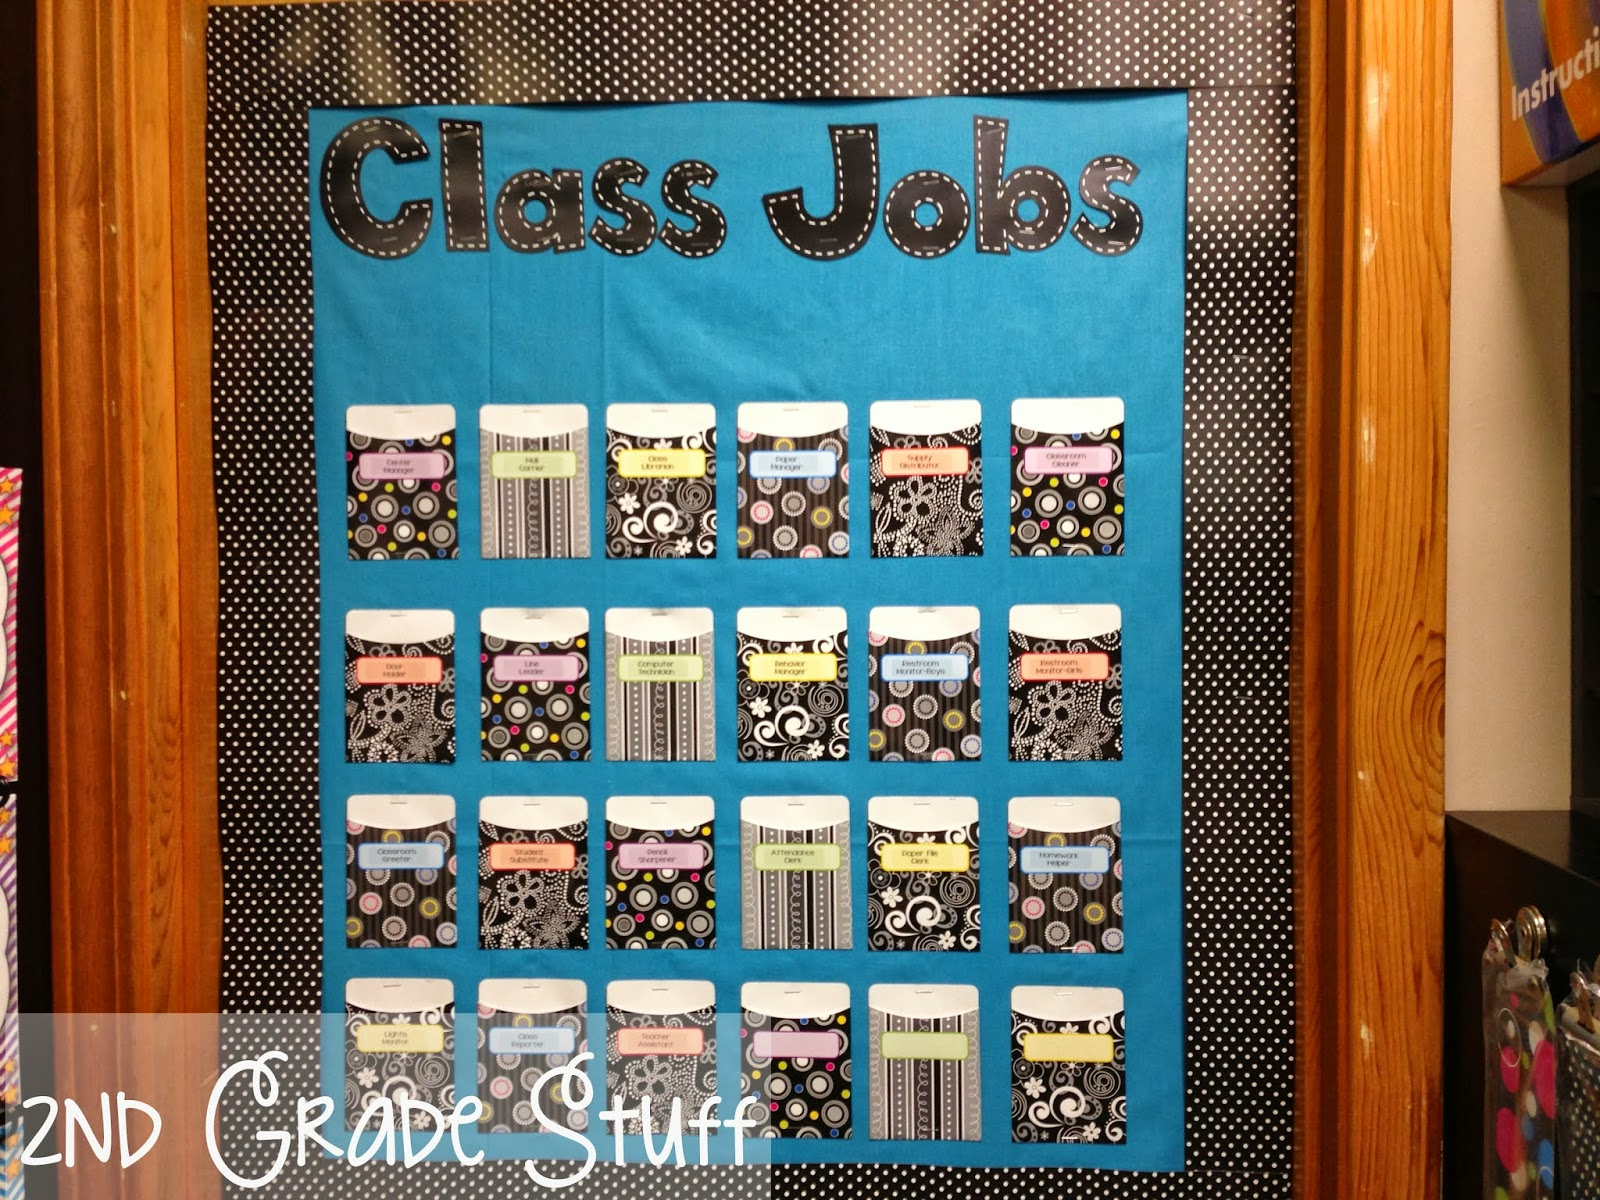 Classroom Decorations For Grade 7 : Classroom management with nd grade stuff freebies owl